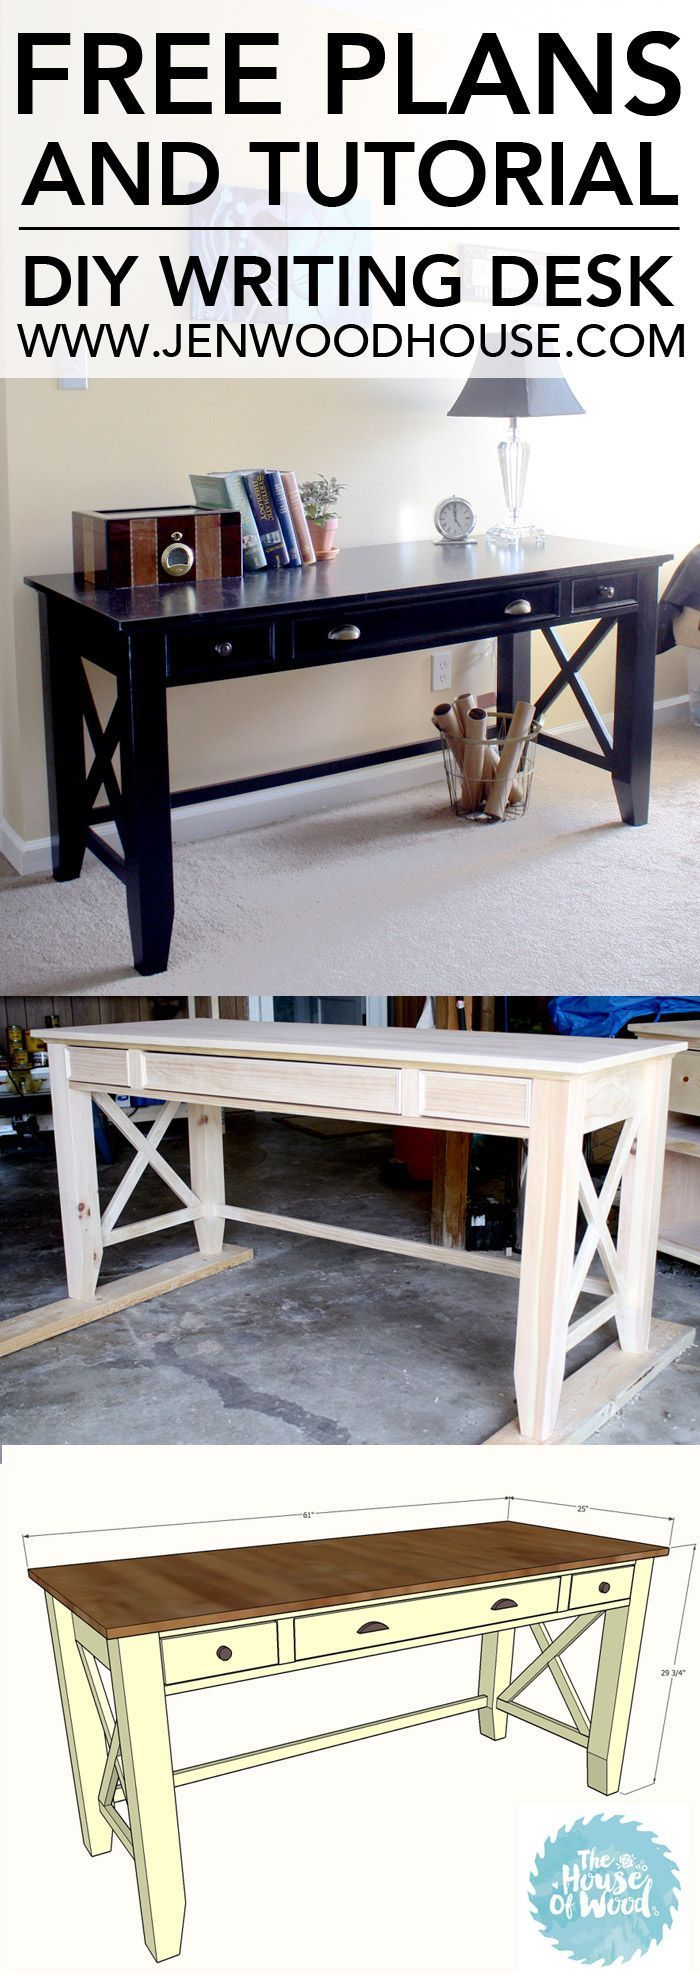 How to build a DIY writing desk. Free plans and tutorial. Looks pretty easy to build!